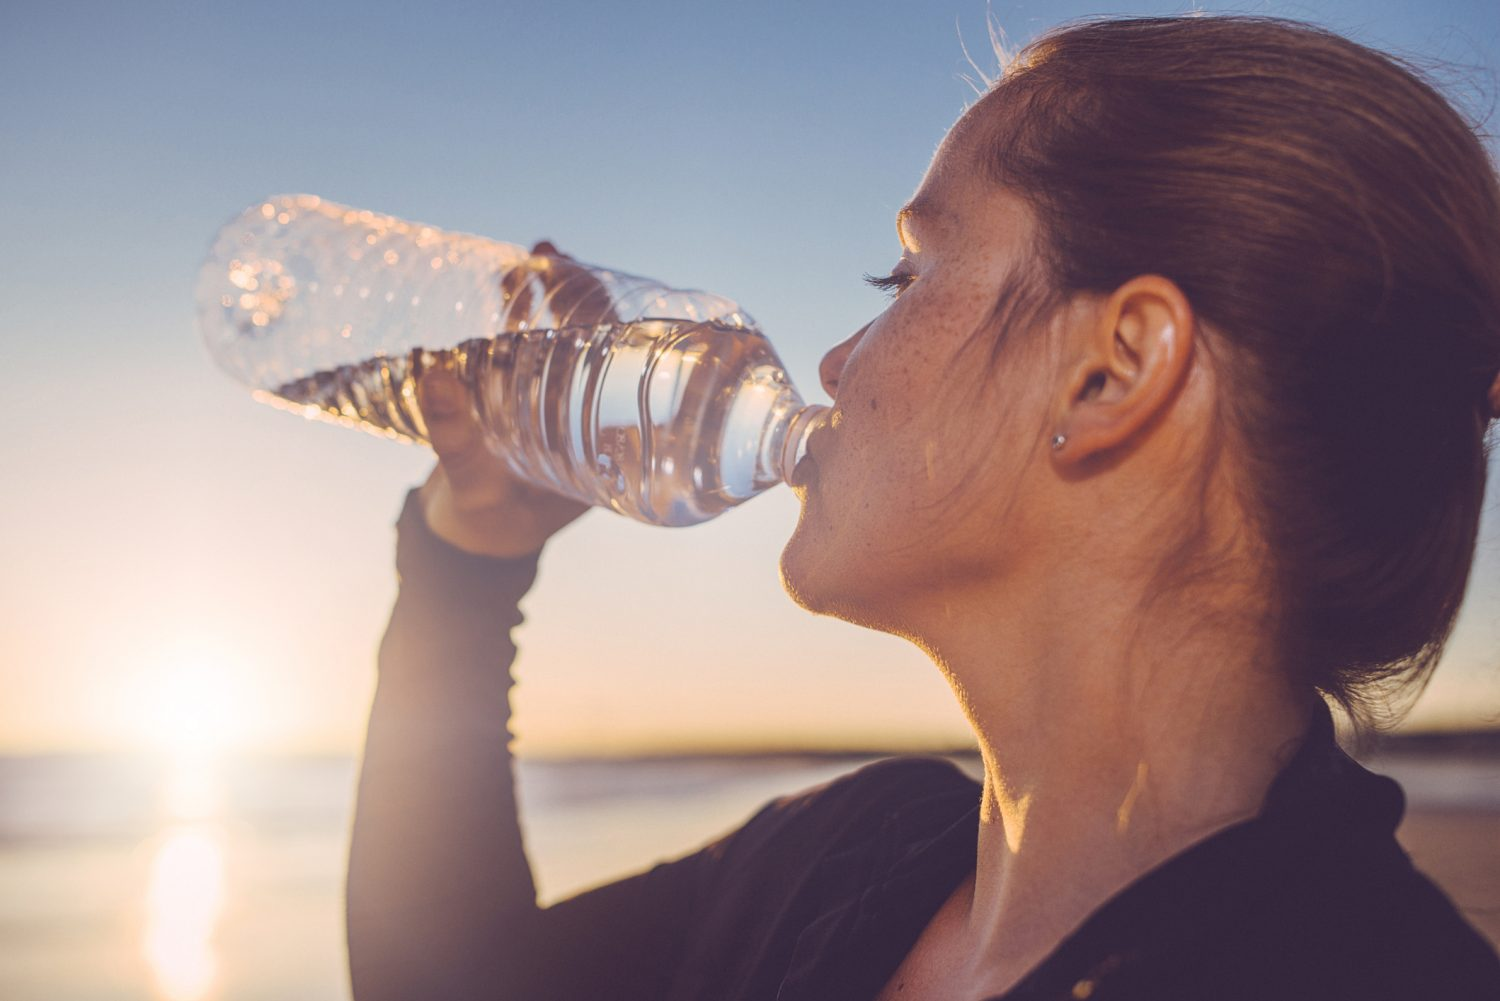 Practical tips for staying hydrated when it's hot Image